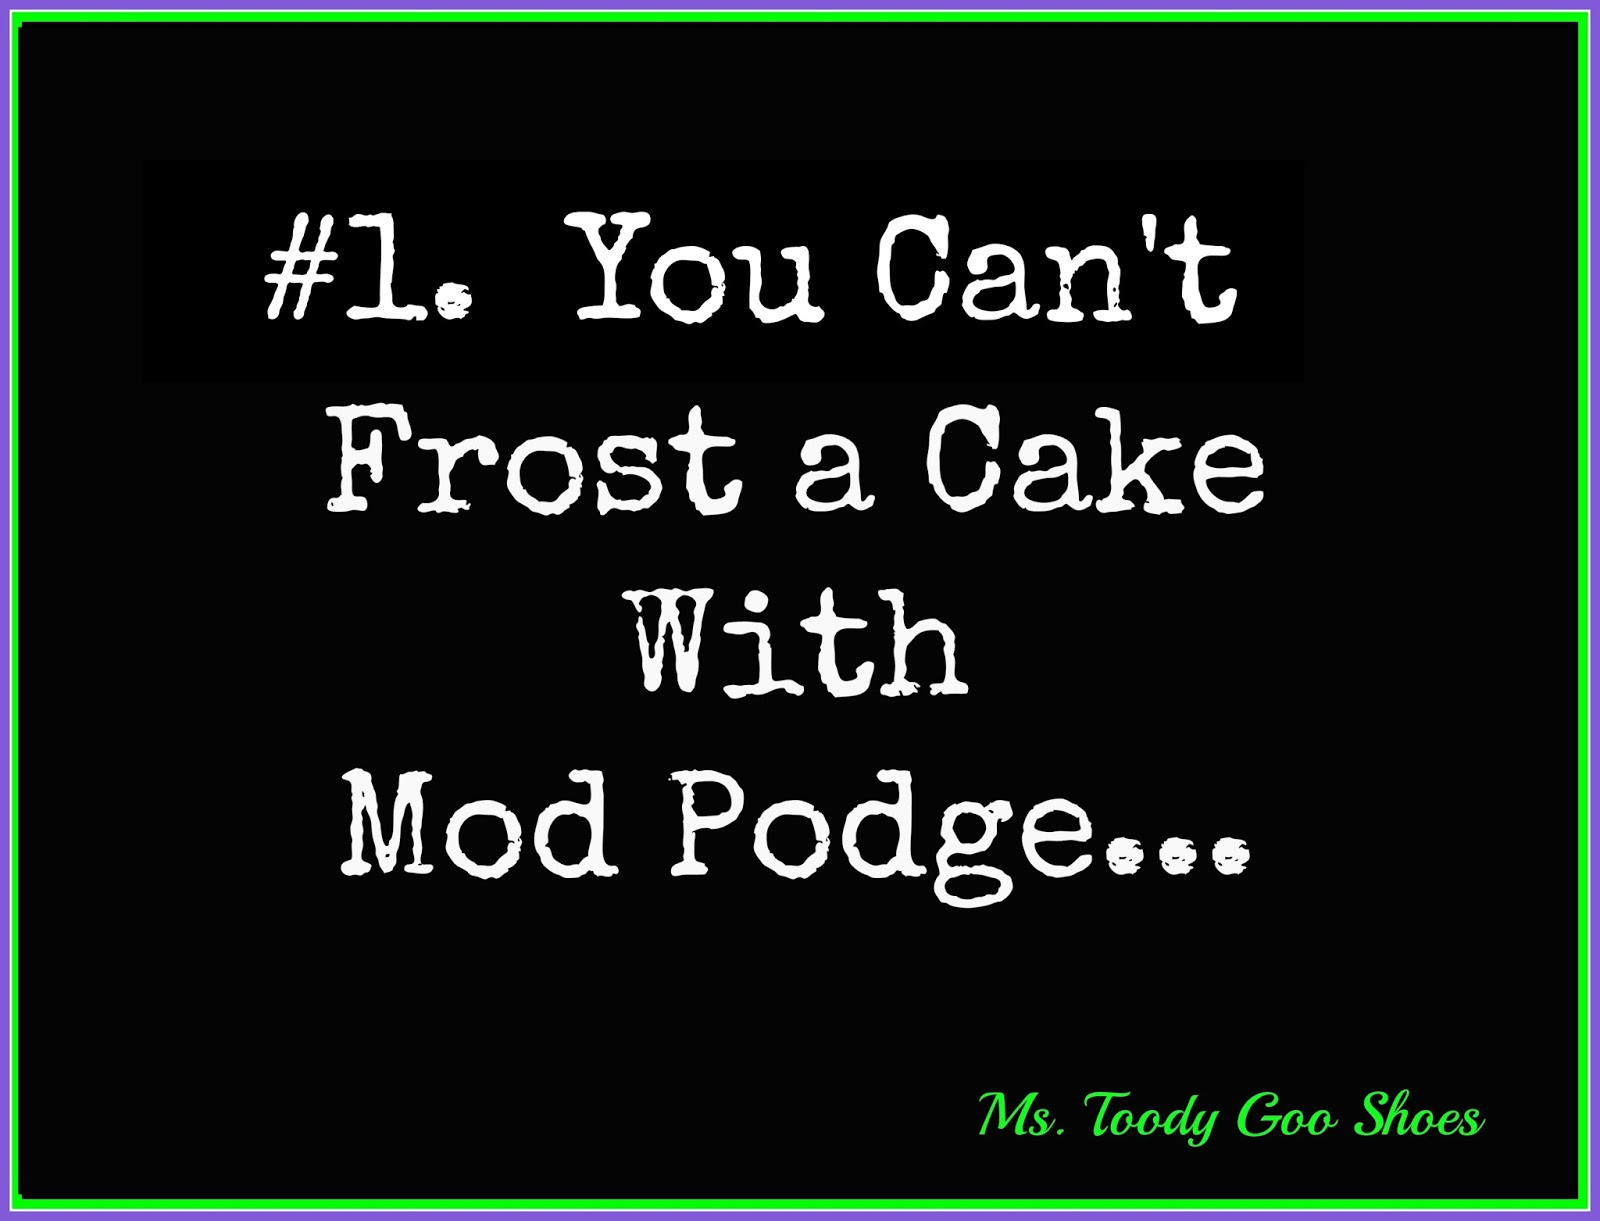 You Can't Frost A Cake You Can't Frost A Cake With Mod Podge: Things I've Learned From Blogging by Ms. Toody Goo Shoes